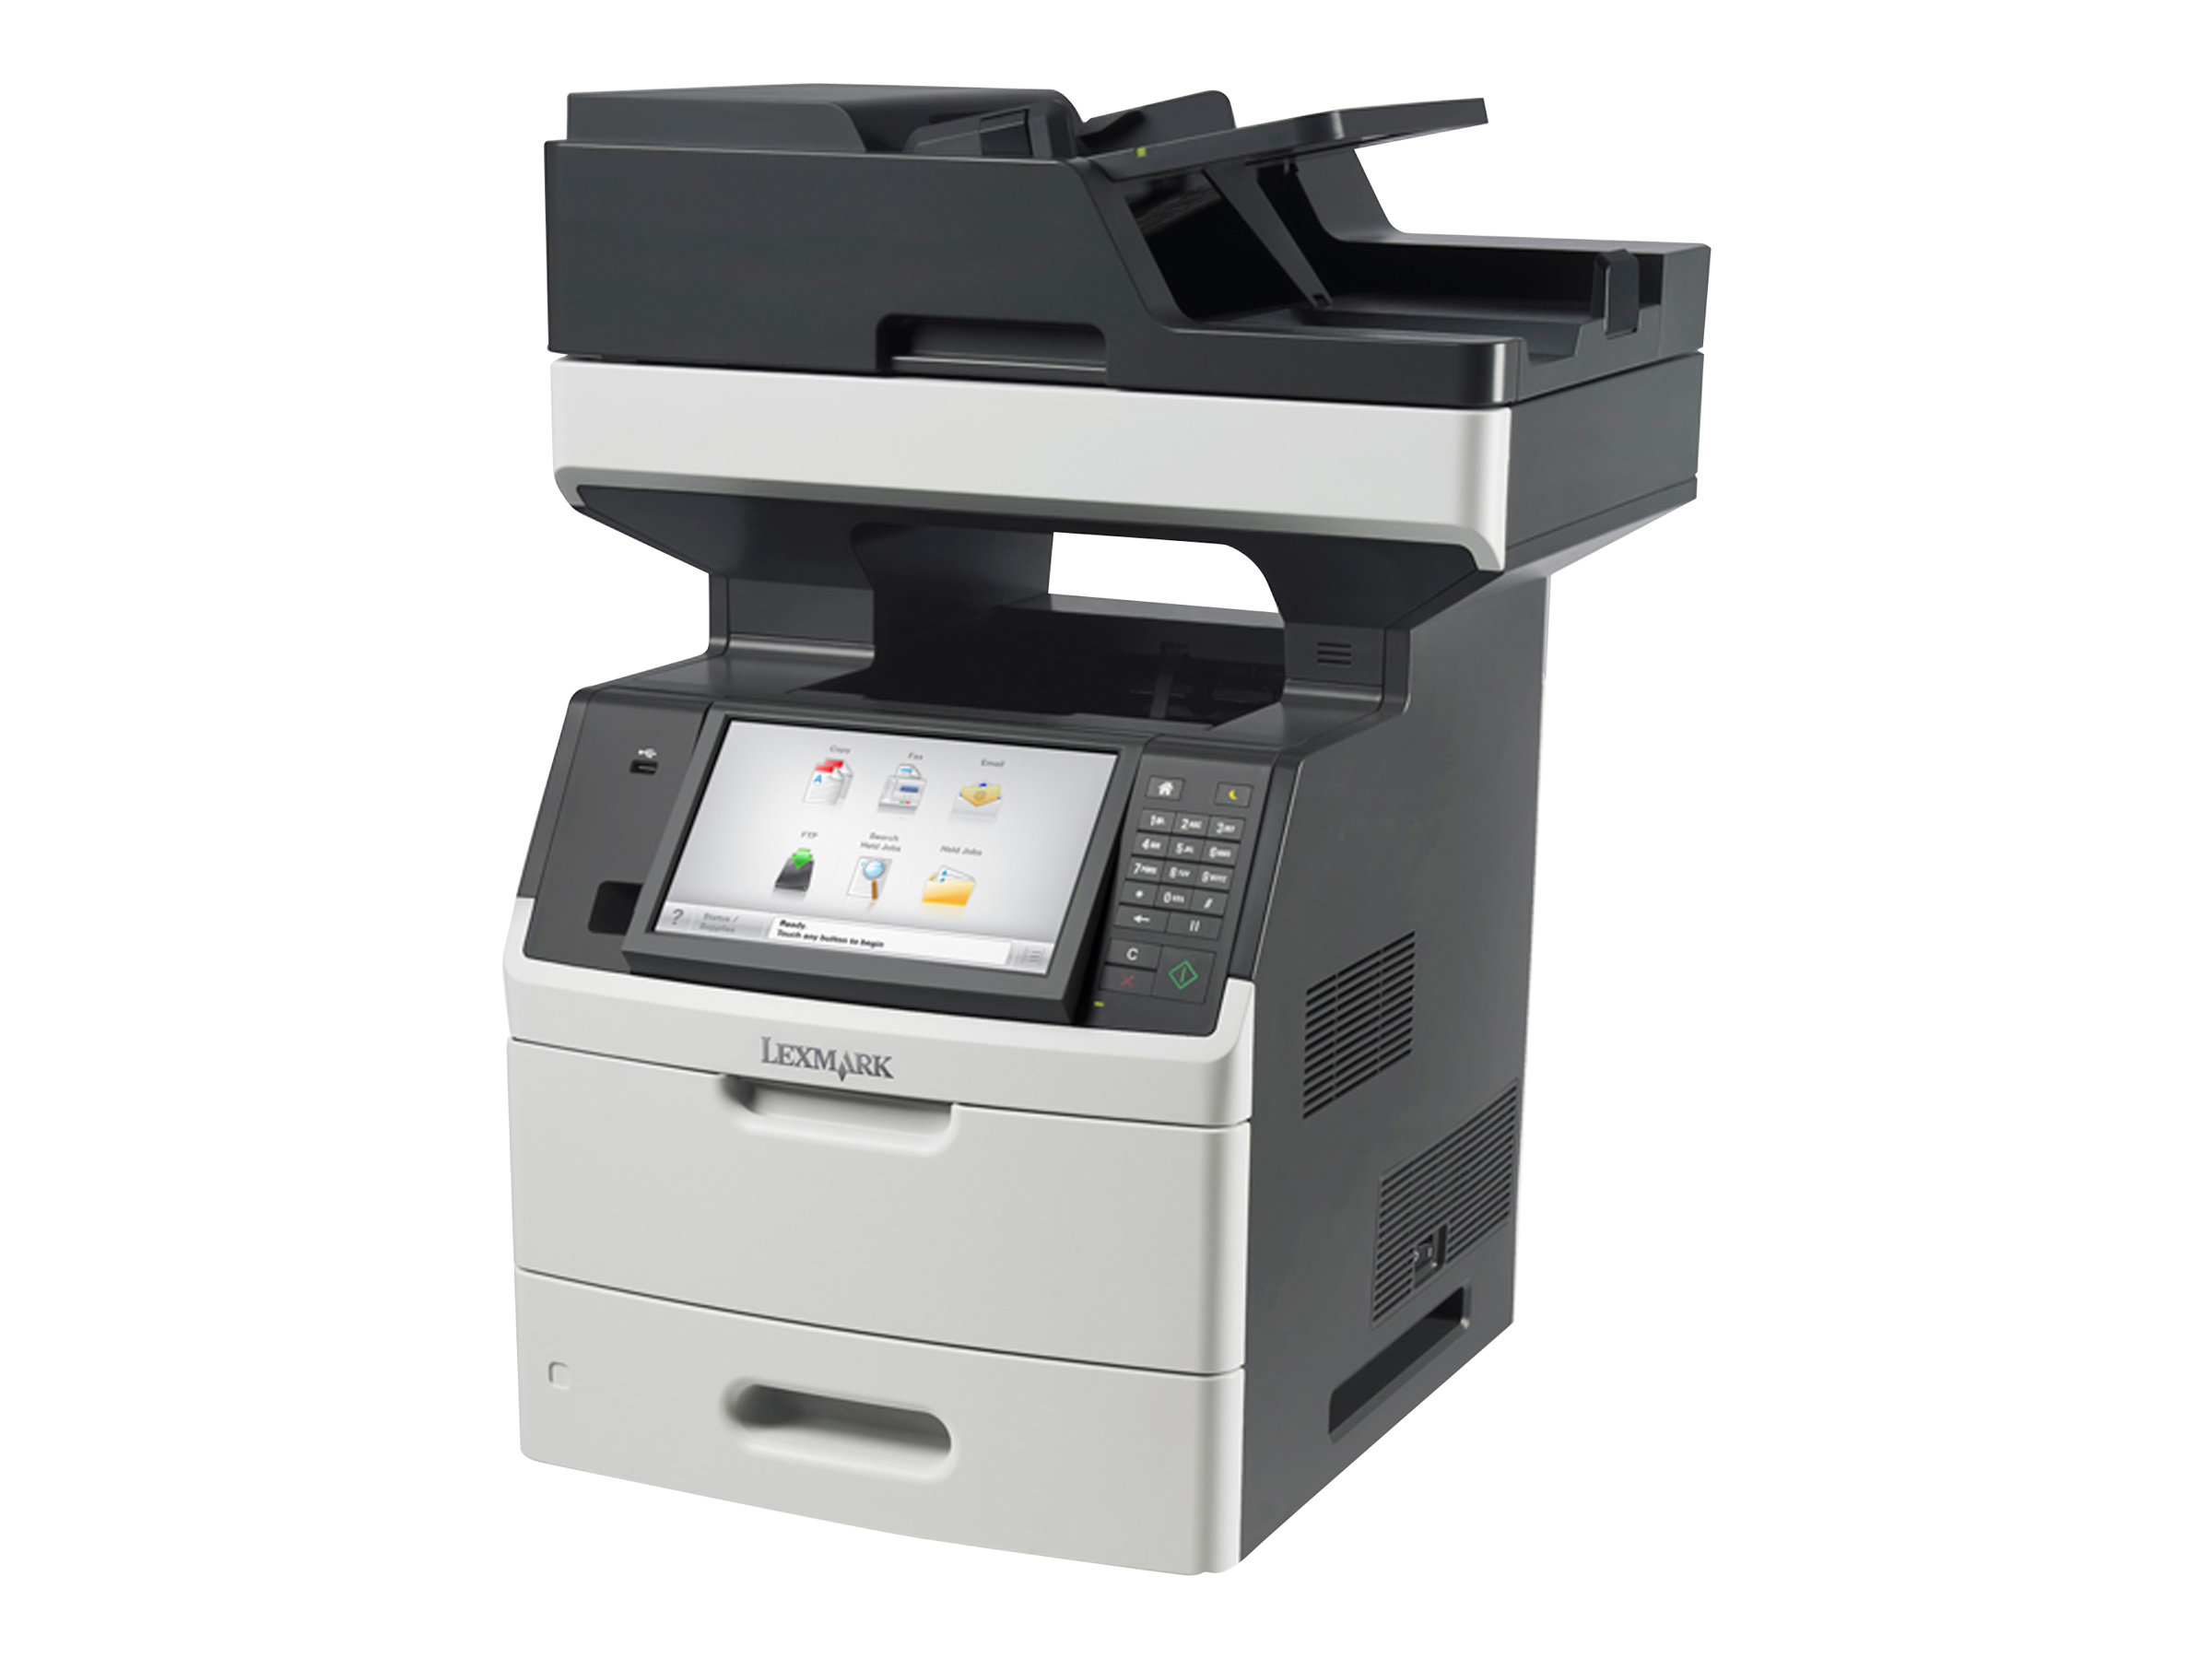 Lexmark MX711de - Multifunktionsdrucker - s/w - Laser - Legal (216 x 356 mm) (Original) - Legal (Medien)